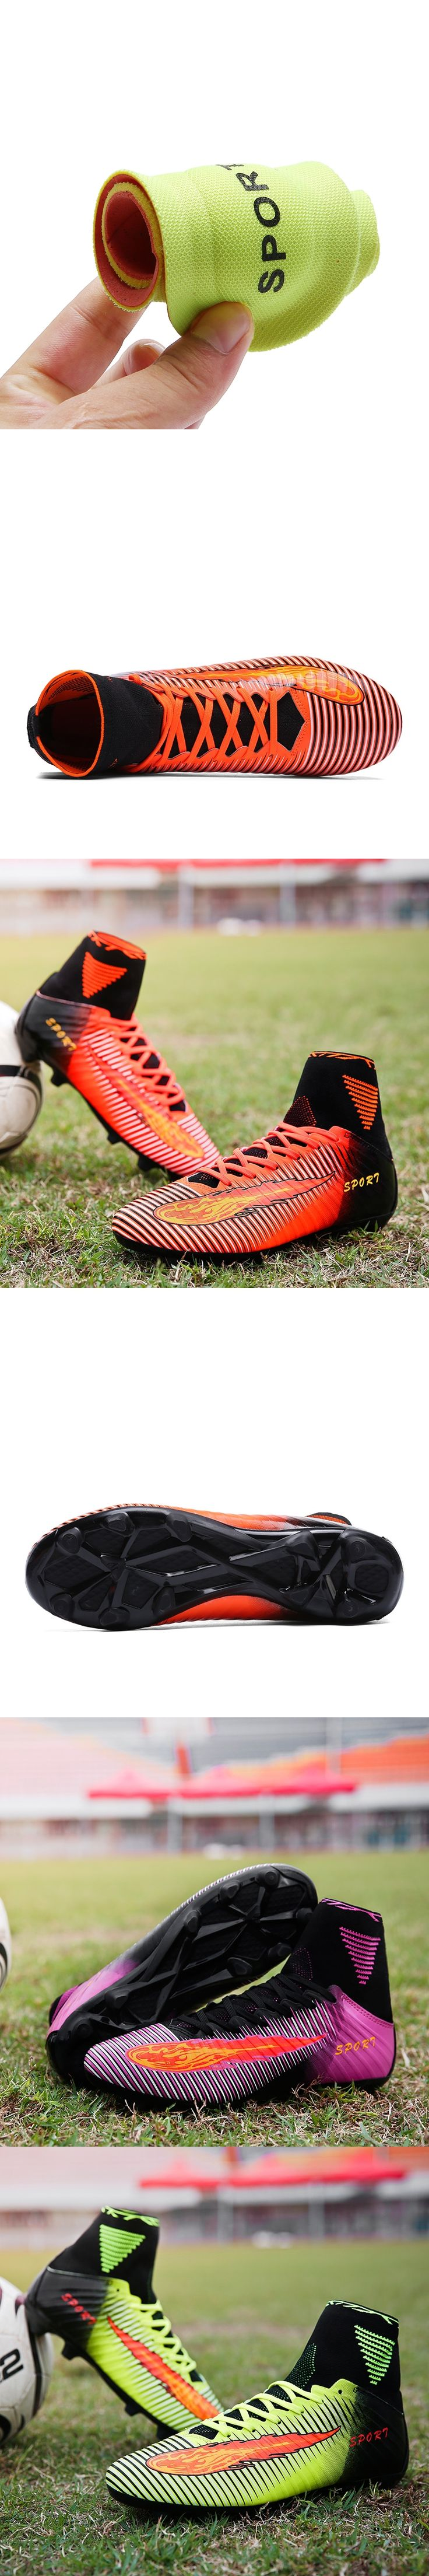 FG Soccer Shoes Men Football Boots Kids High Top Adults Soccer Cleats Outdoor Children Athletic Trainers Youth Sports Sneakers